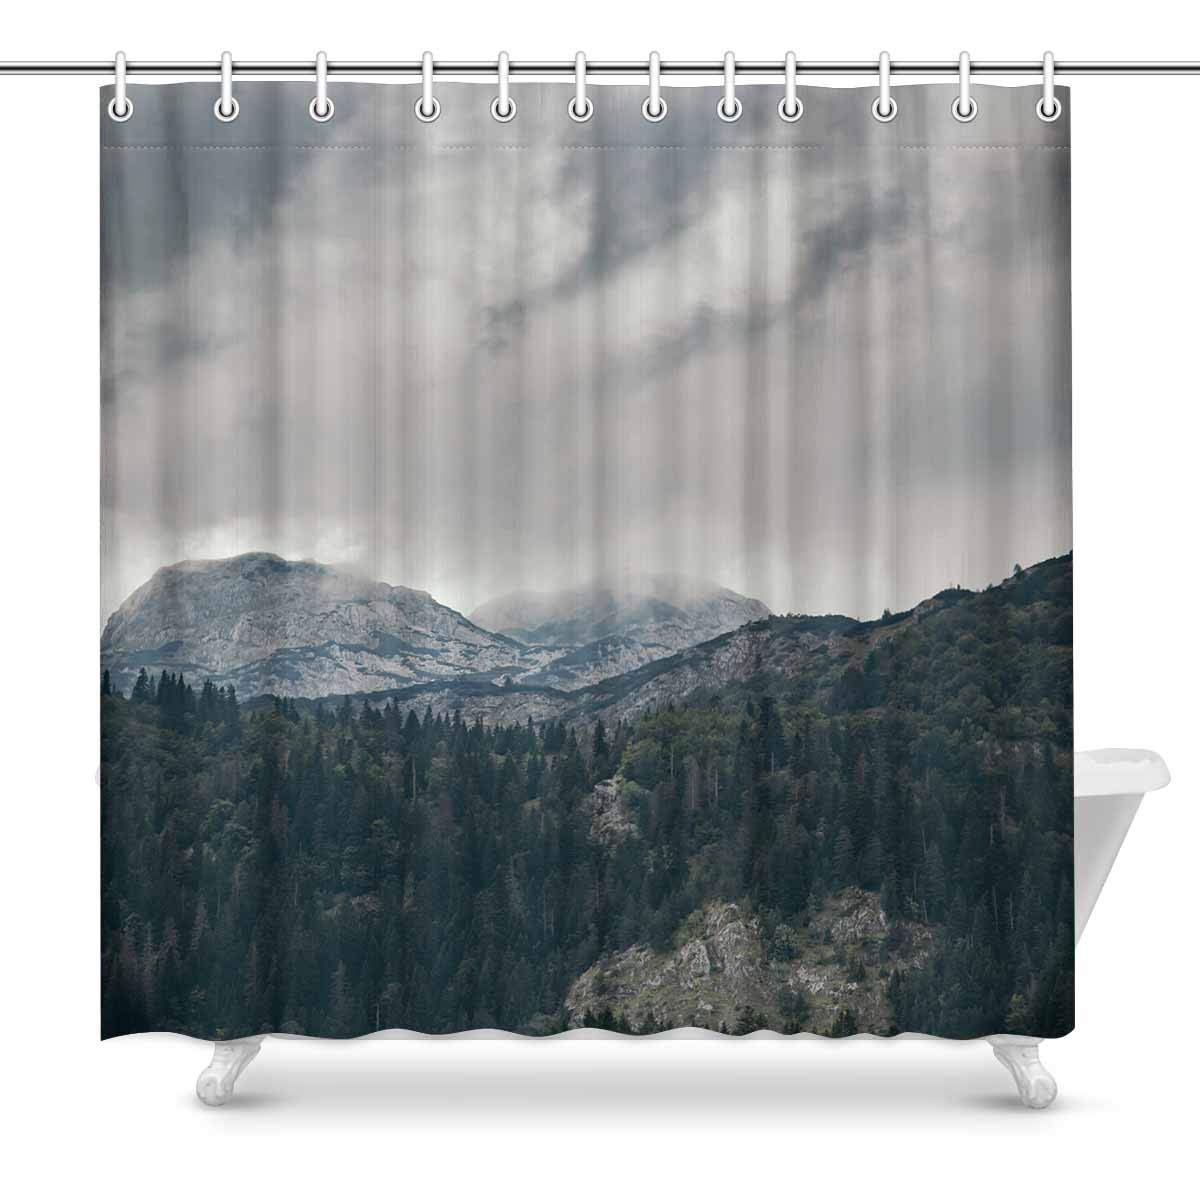 Gckg High Mountain Cloudy Sky Shower Curtain Beautiful Nature Landscape Polyester Fabric Shower Curtain Bathroom Sets 66x72 Inches